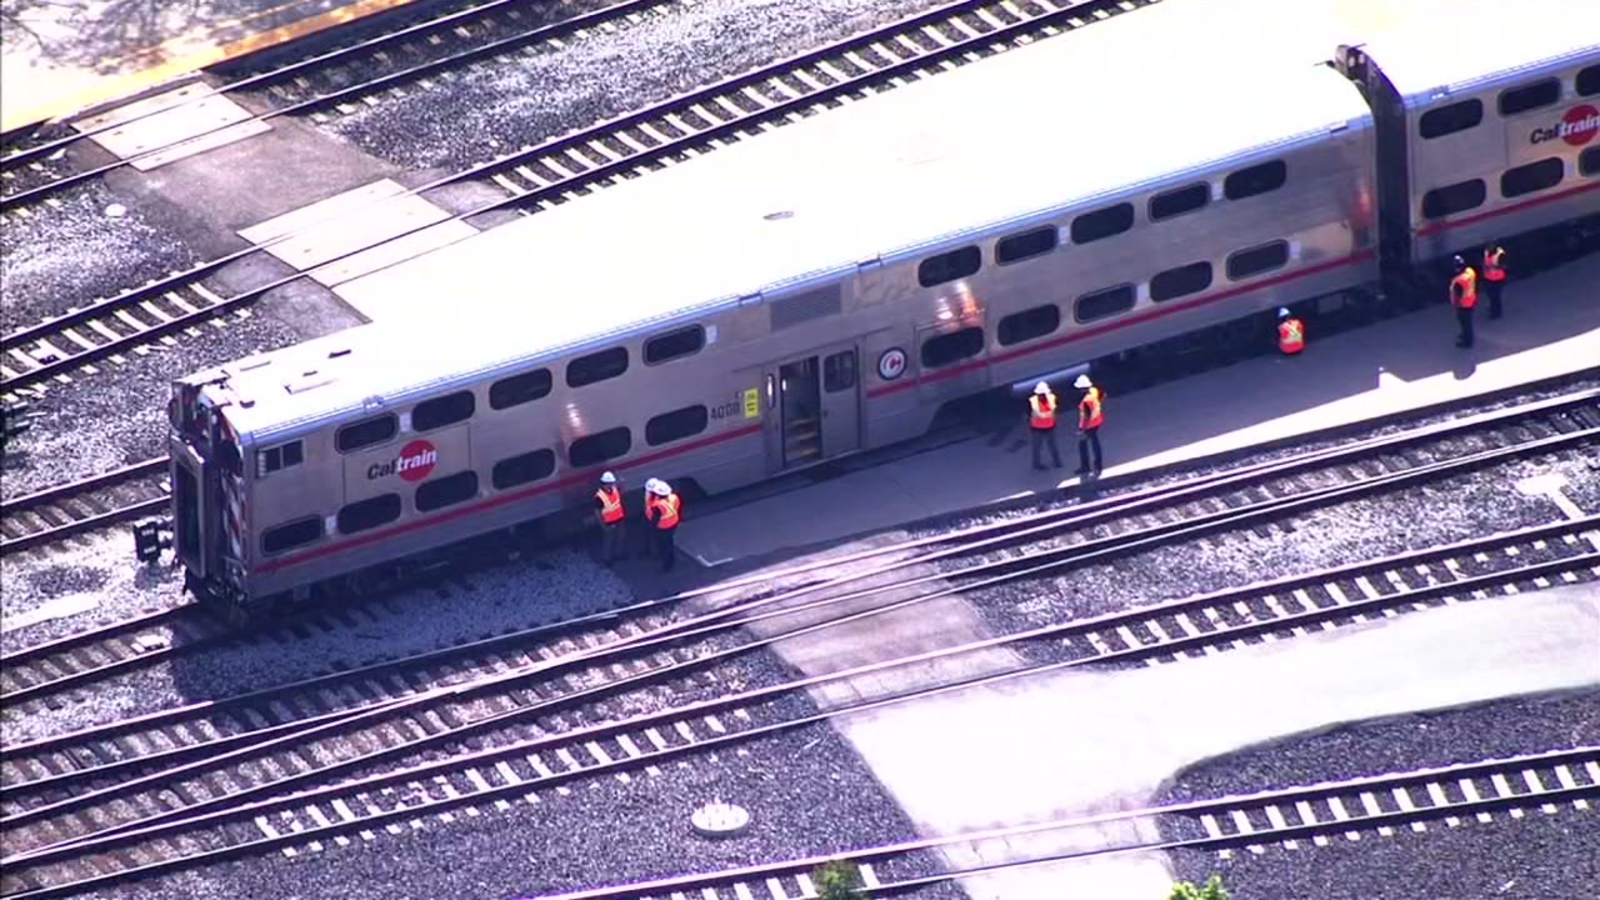 Caltrain derailment in San Jose may cause residual delays for evening commute